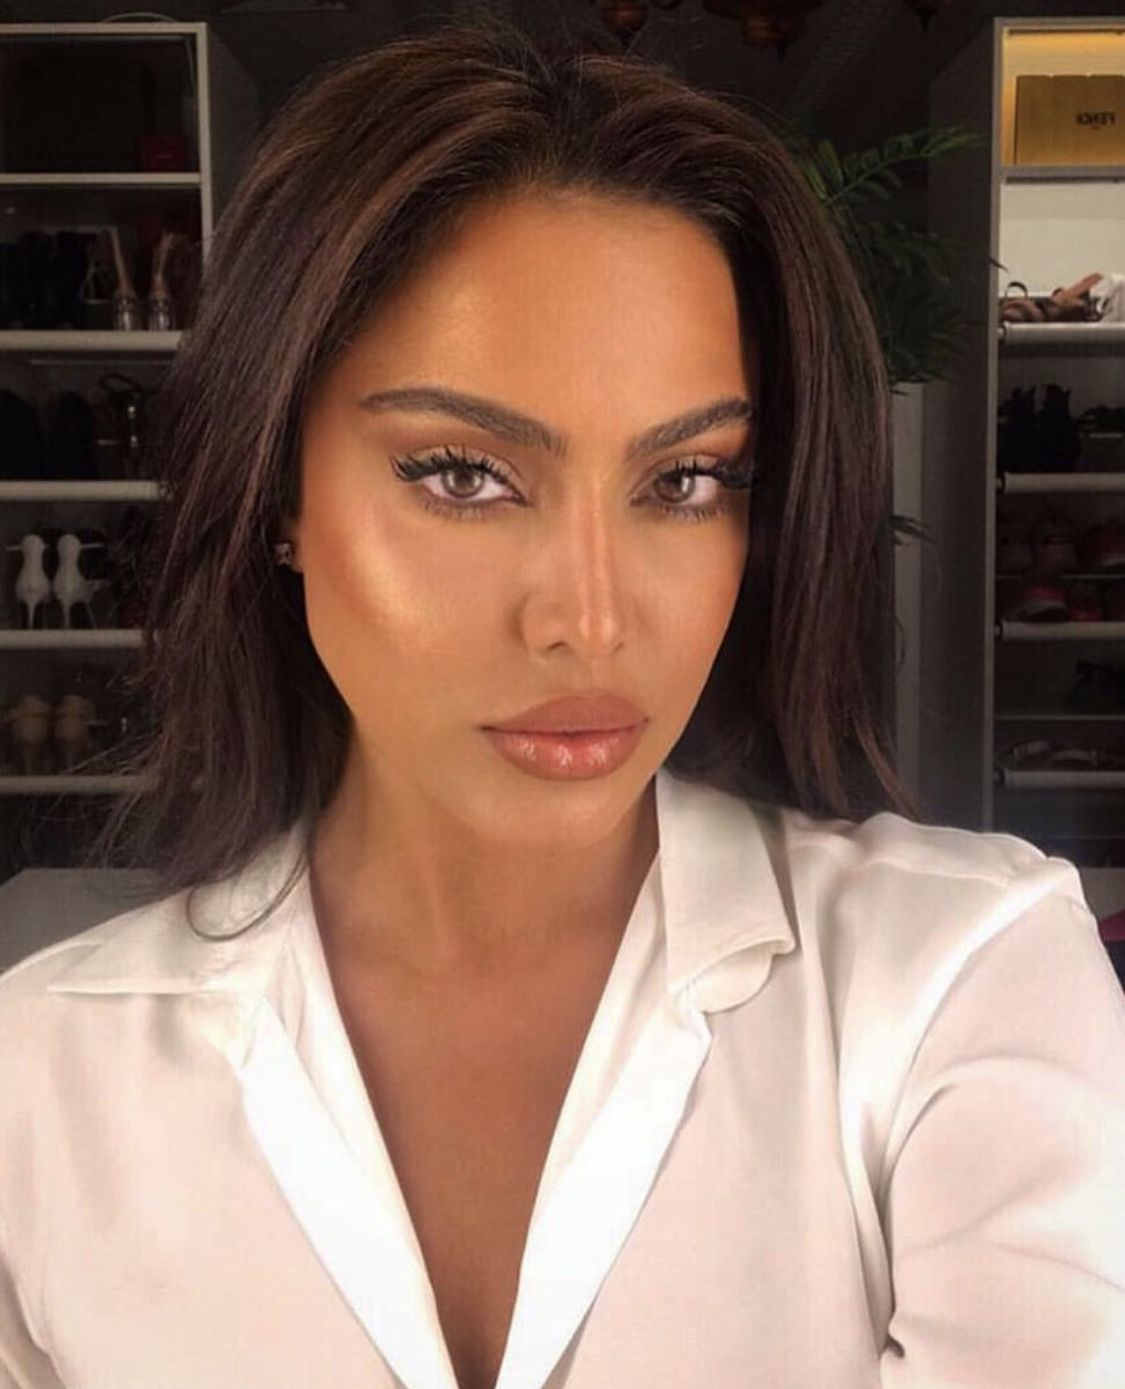 Pin By Milla Haaparanta On Amazing Makeup Beauty In 2020 Cool Hairstyles Beautiful Makeup Hair Images